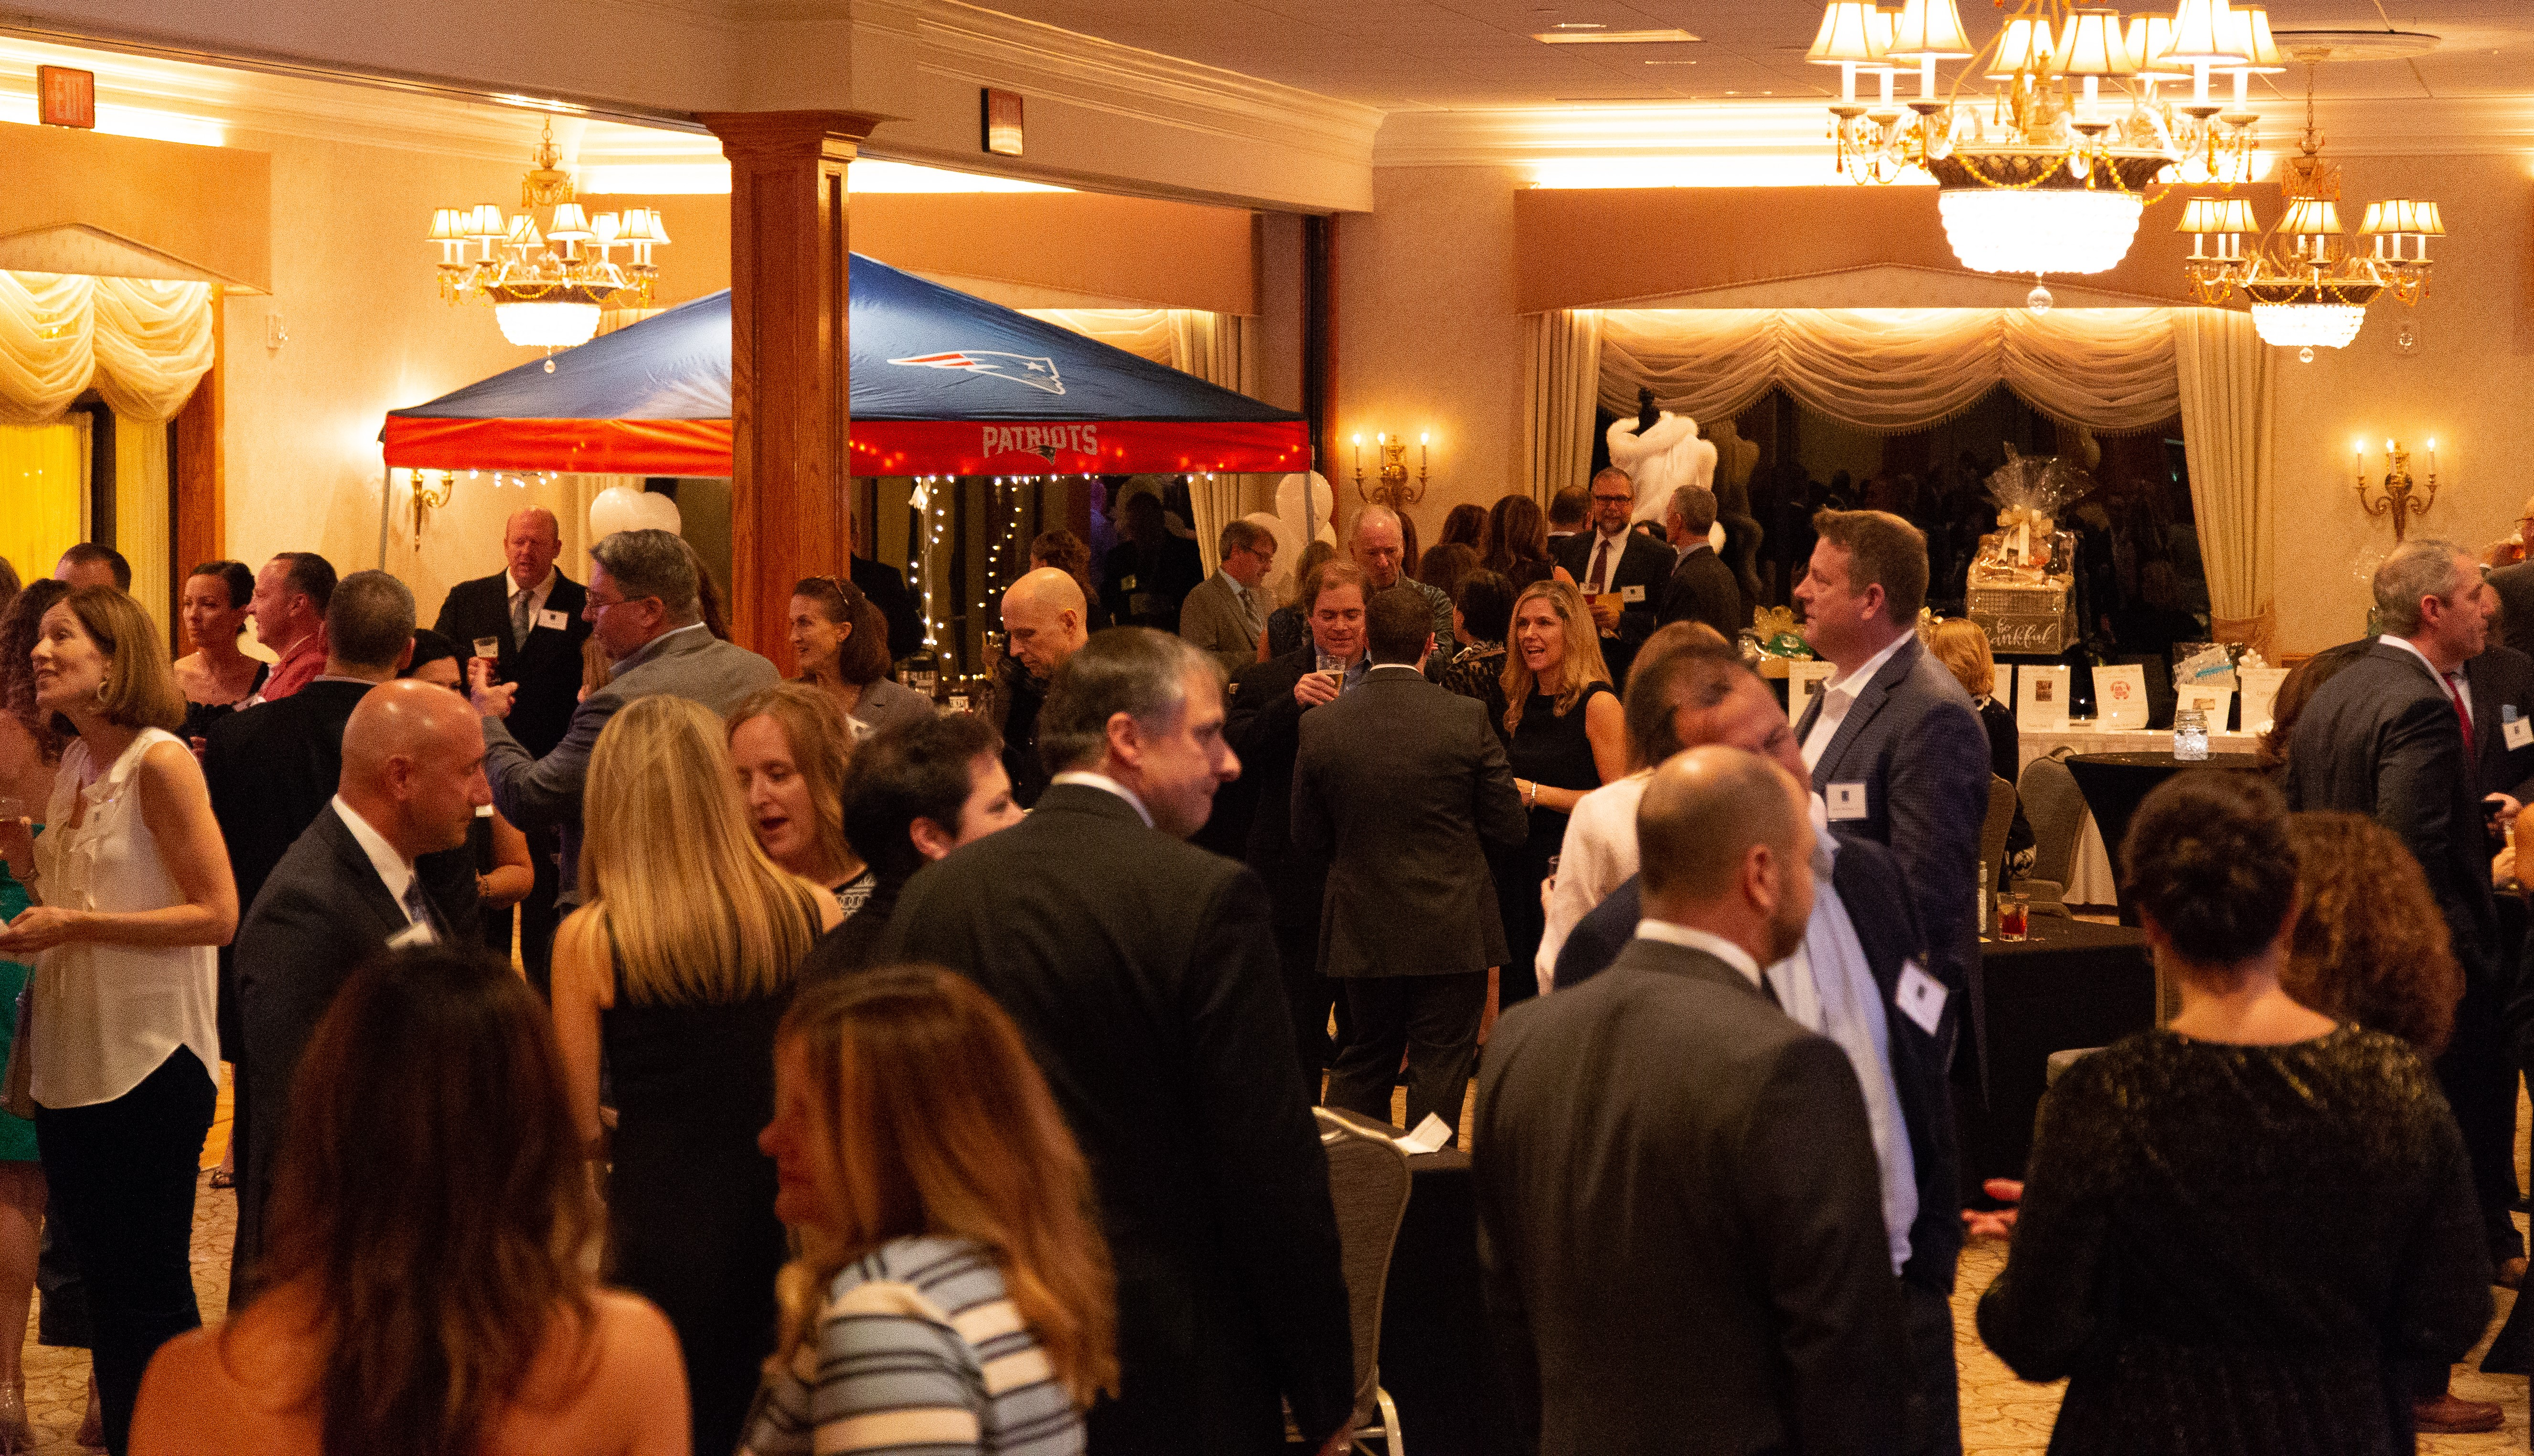 Attendees at the Signature Event